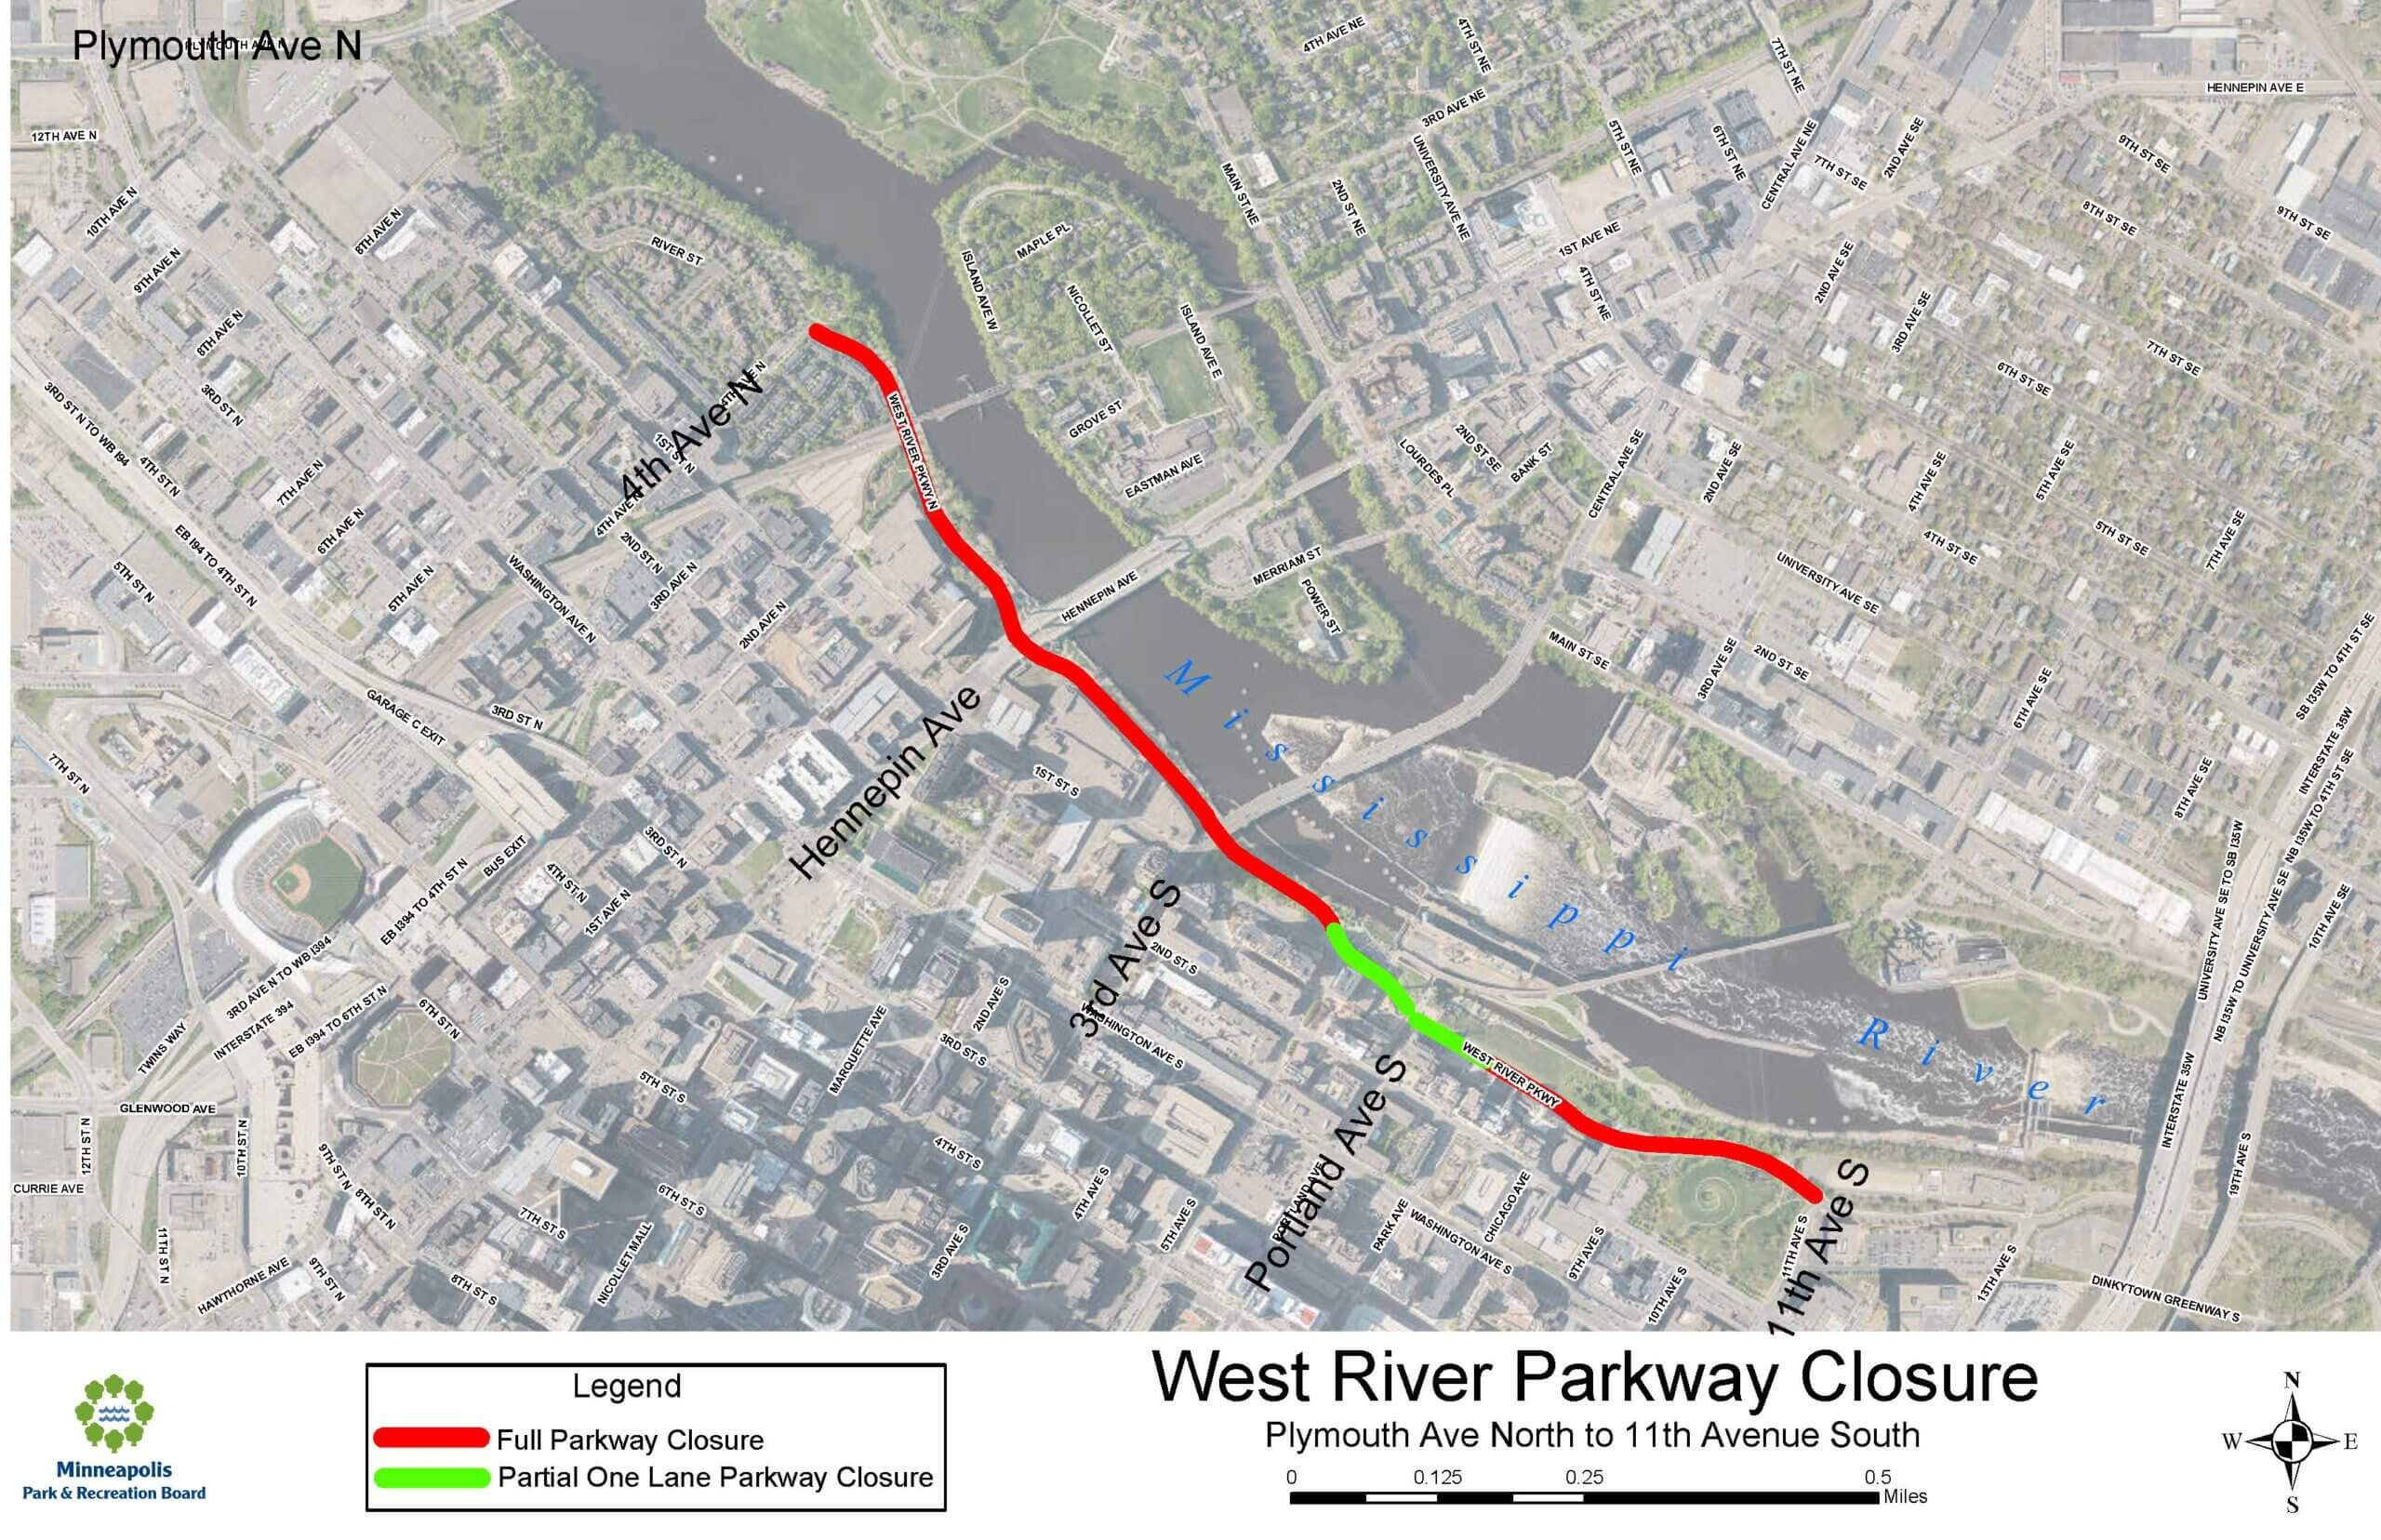 Map of West River Parkway closure